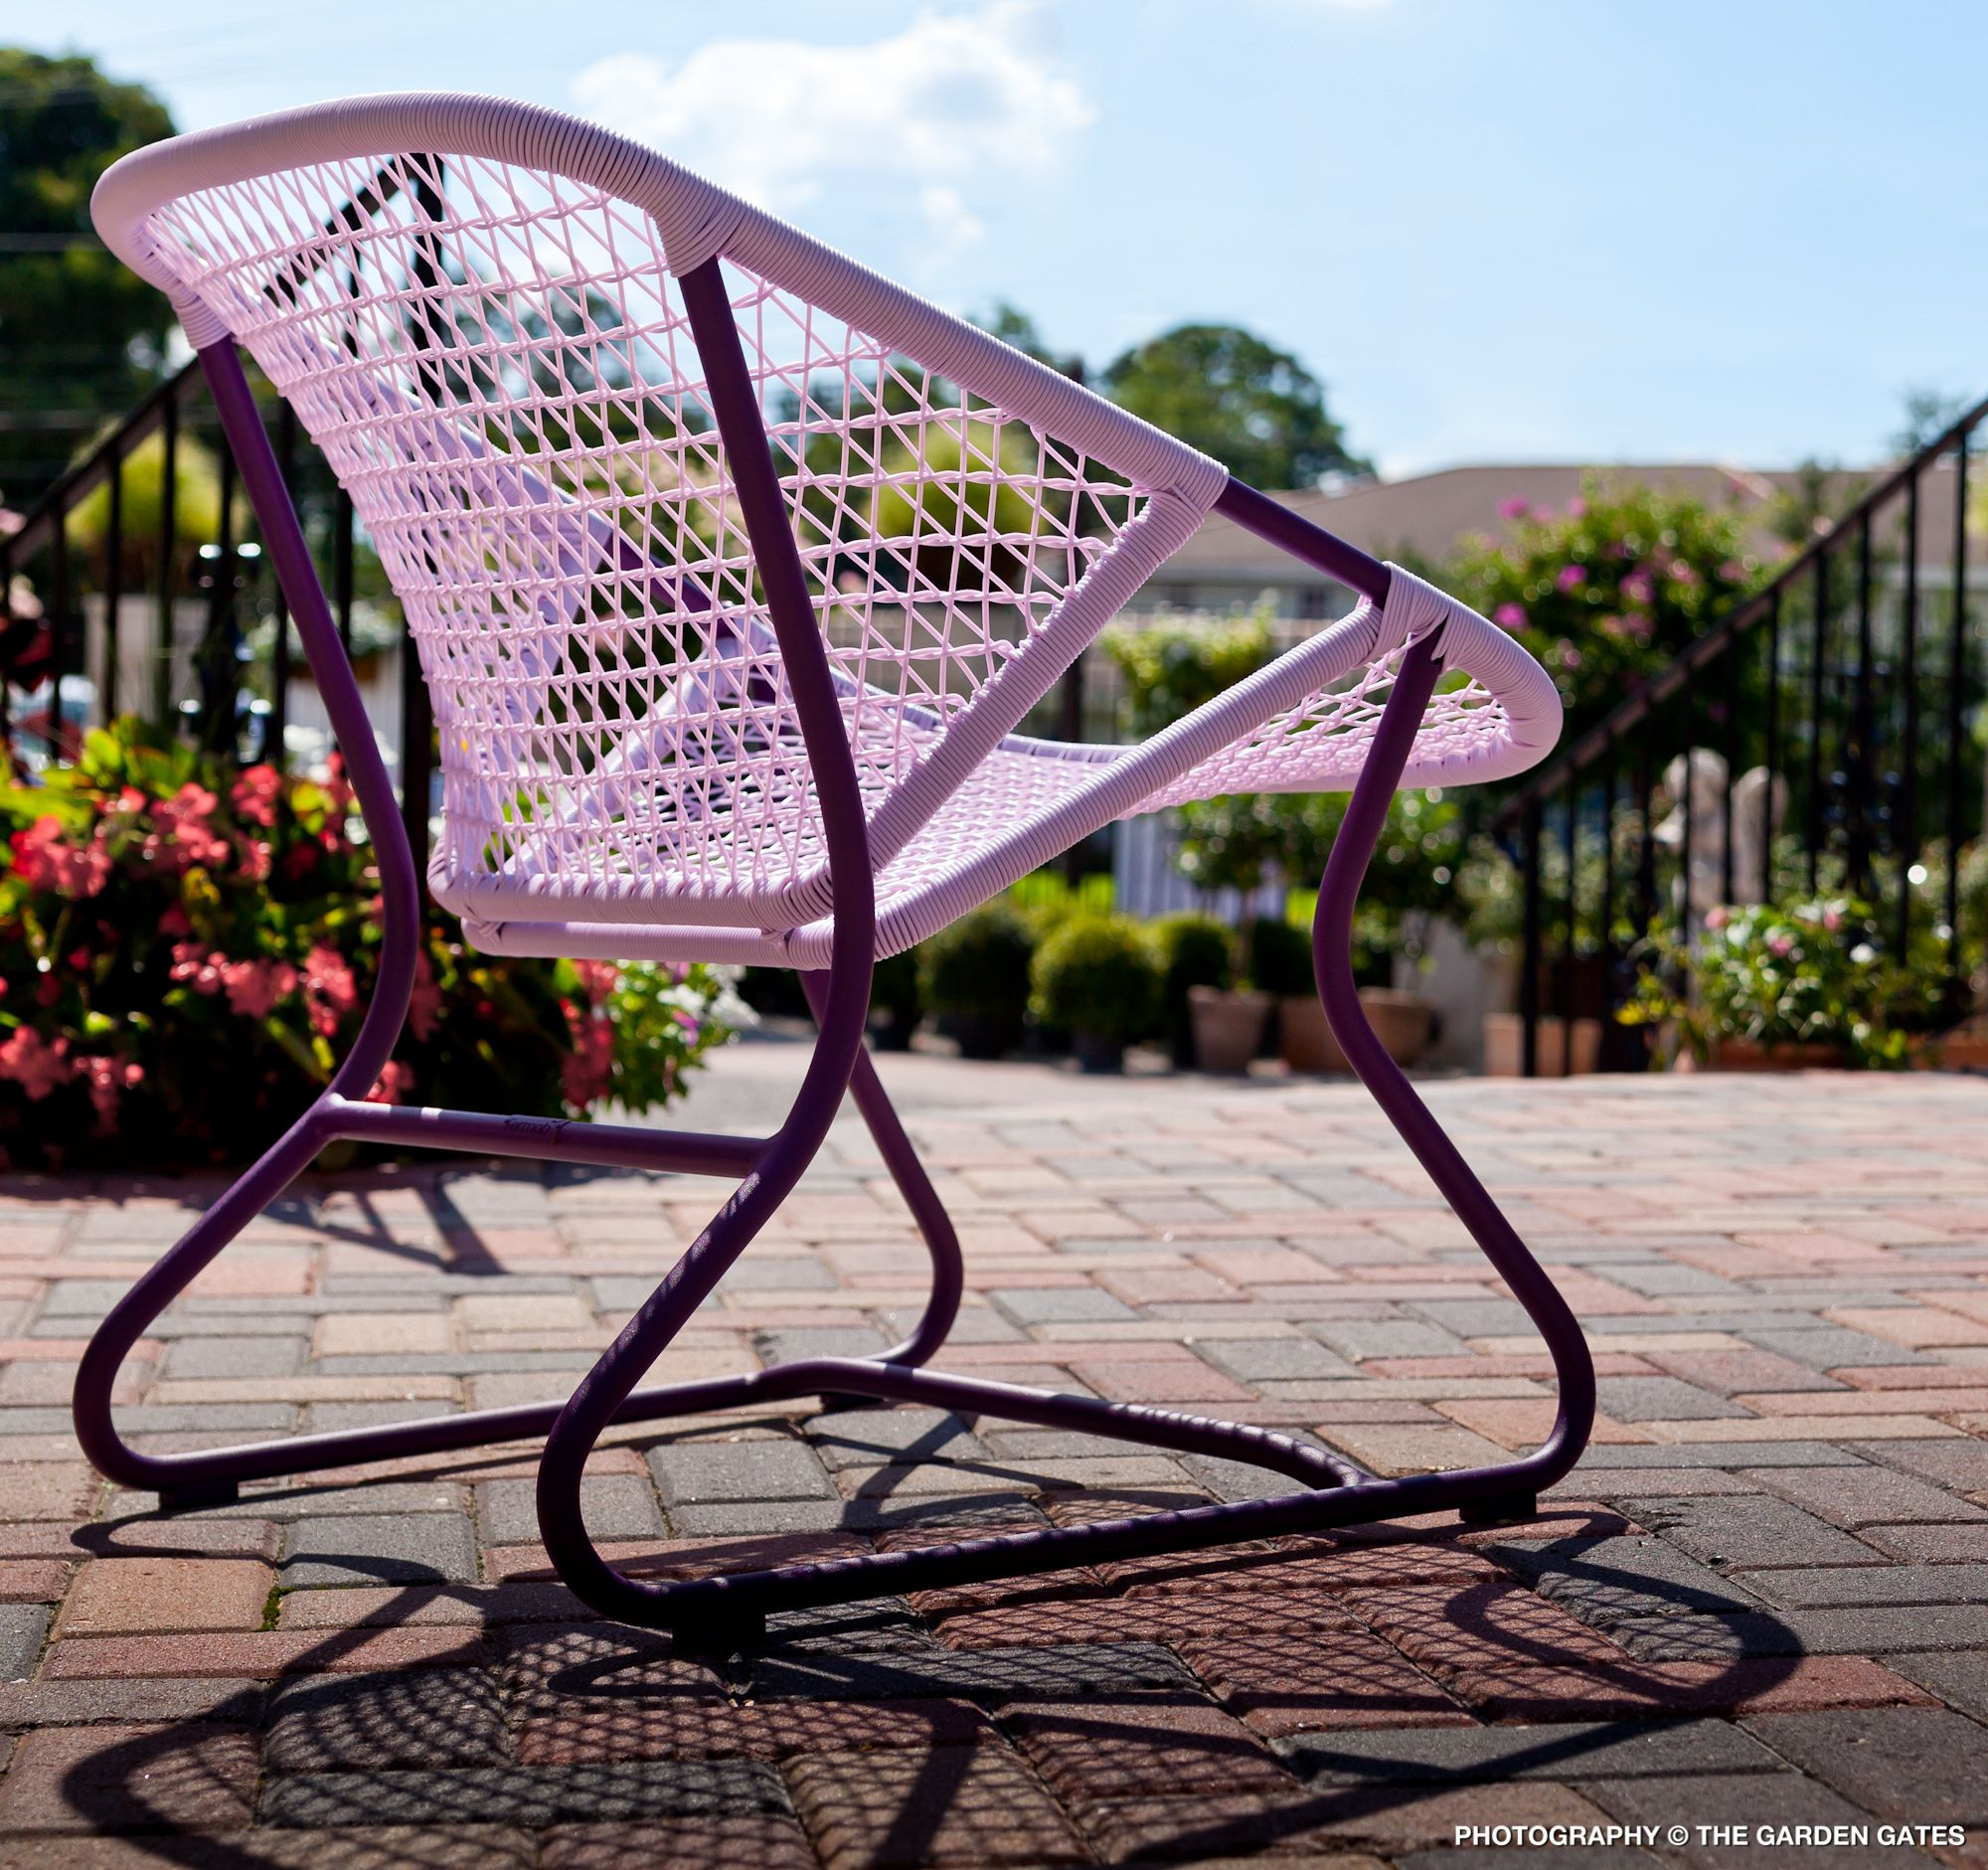 The Fermob Sixties Chair in Aubergine gardengates